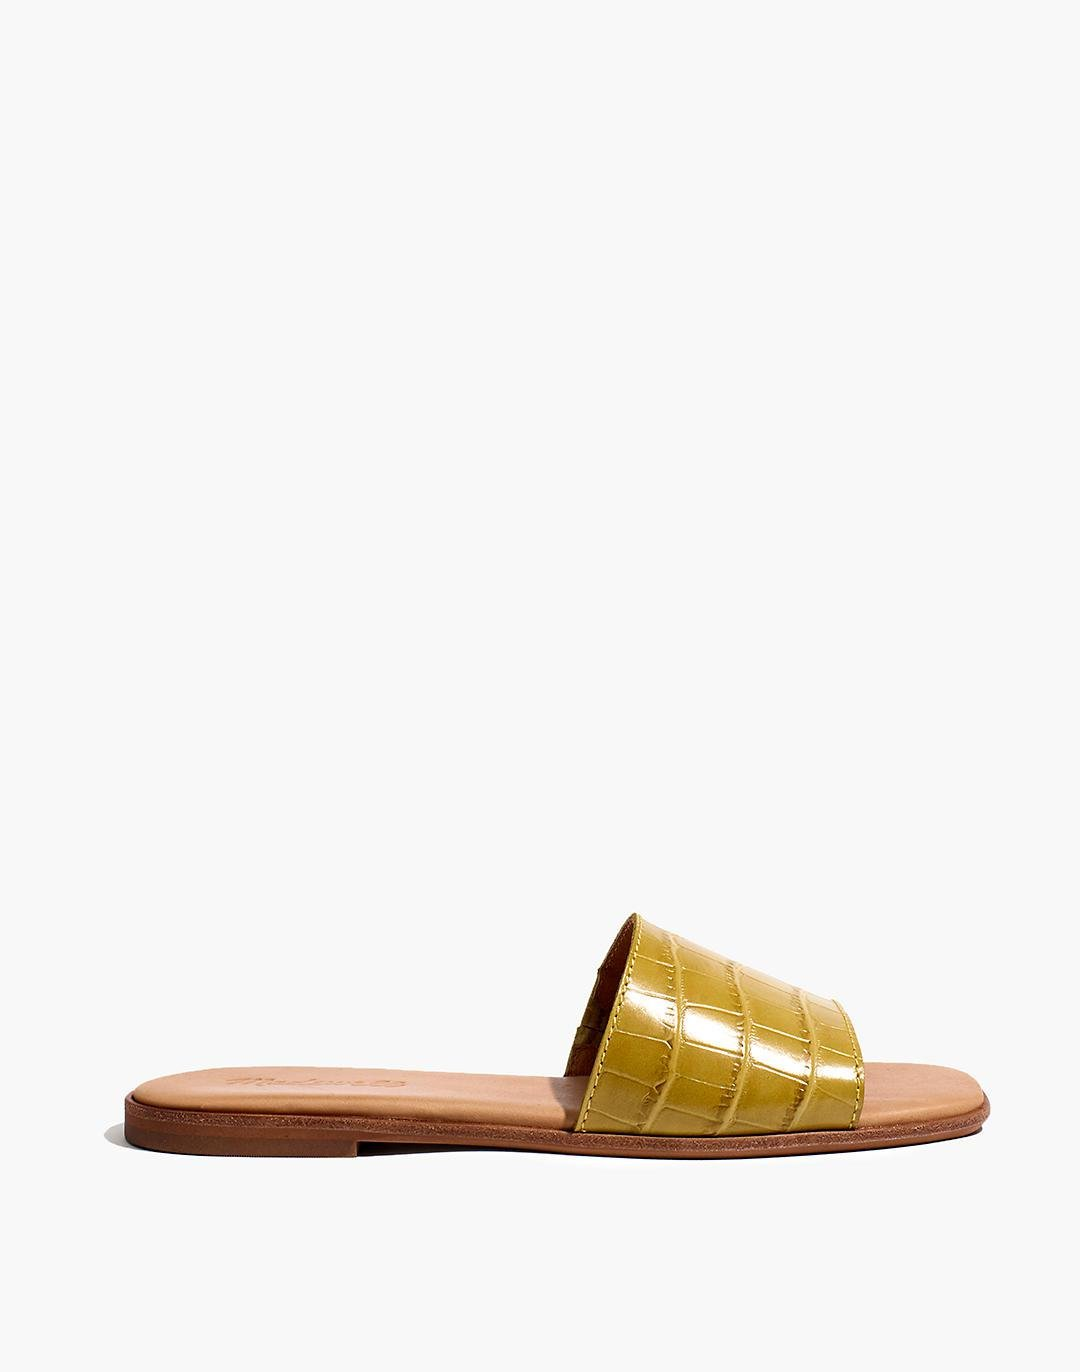 The Lianne Slide in Croc Embossed Leather 1